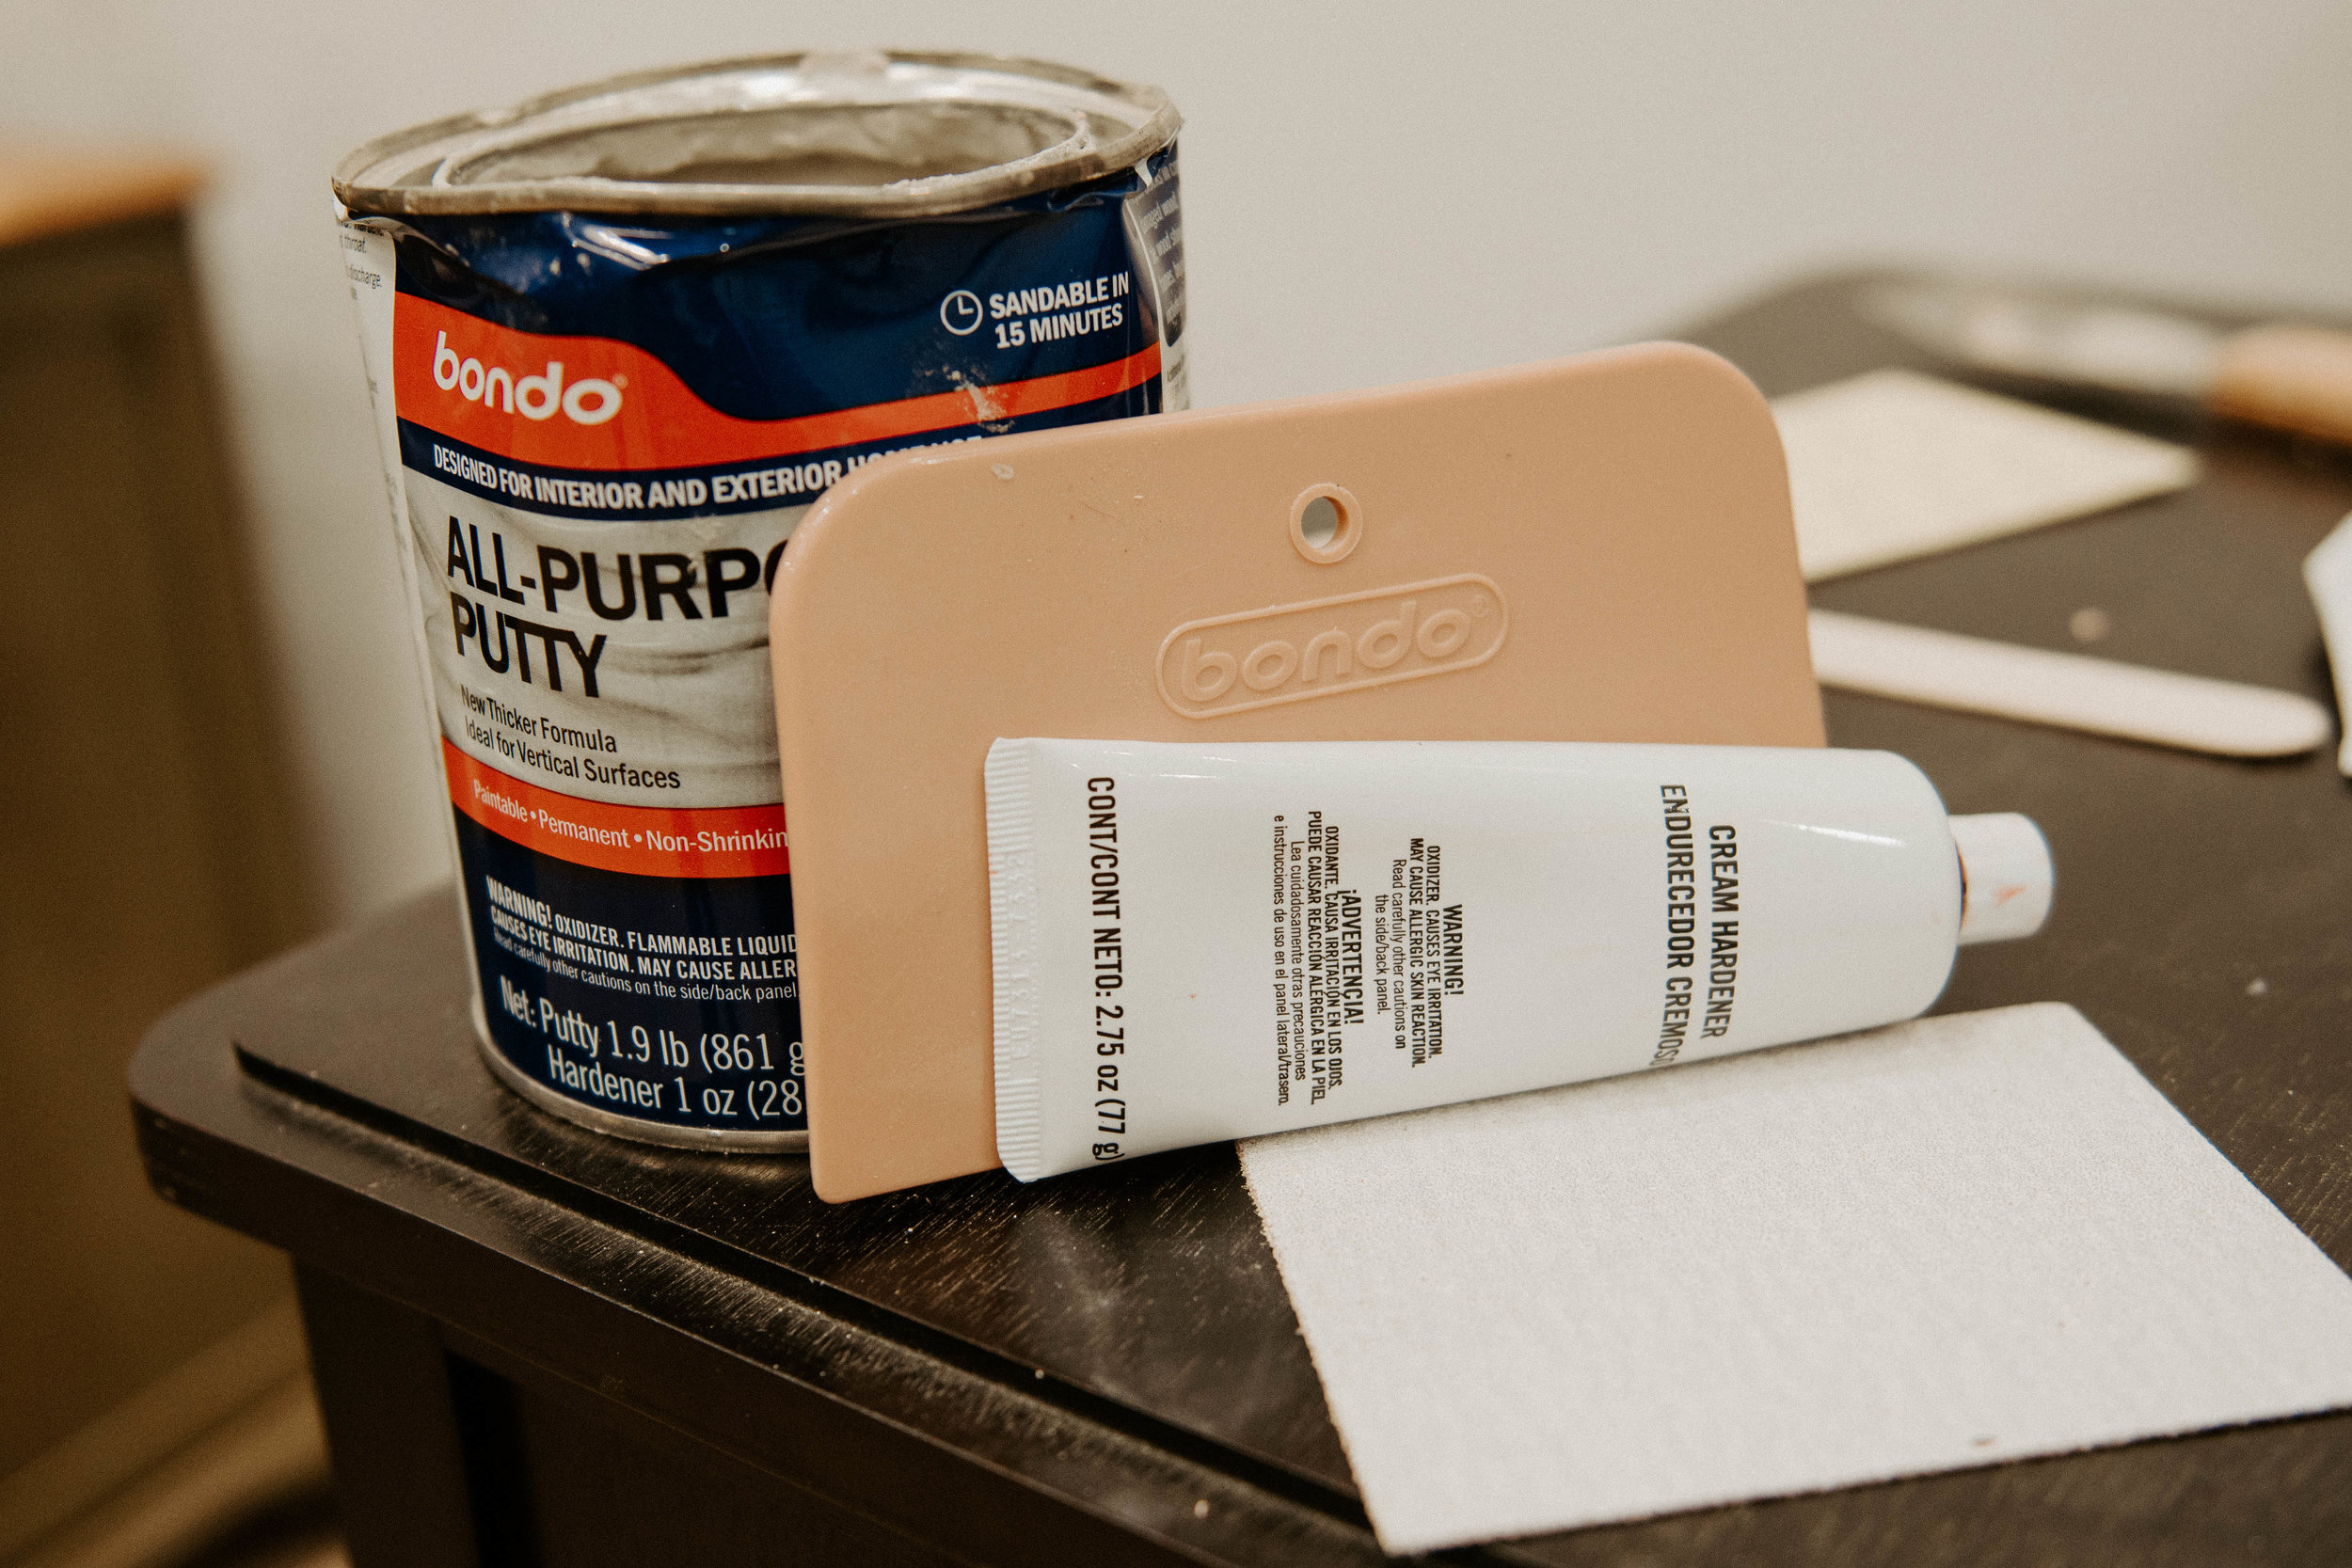 How To Fix Flaws In Wood Furniture With Bondo